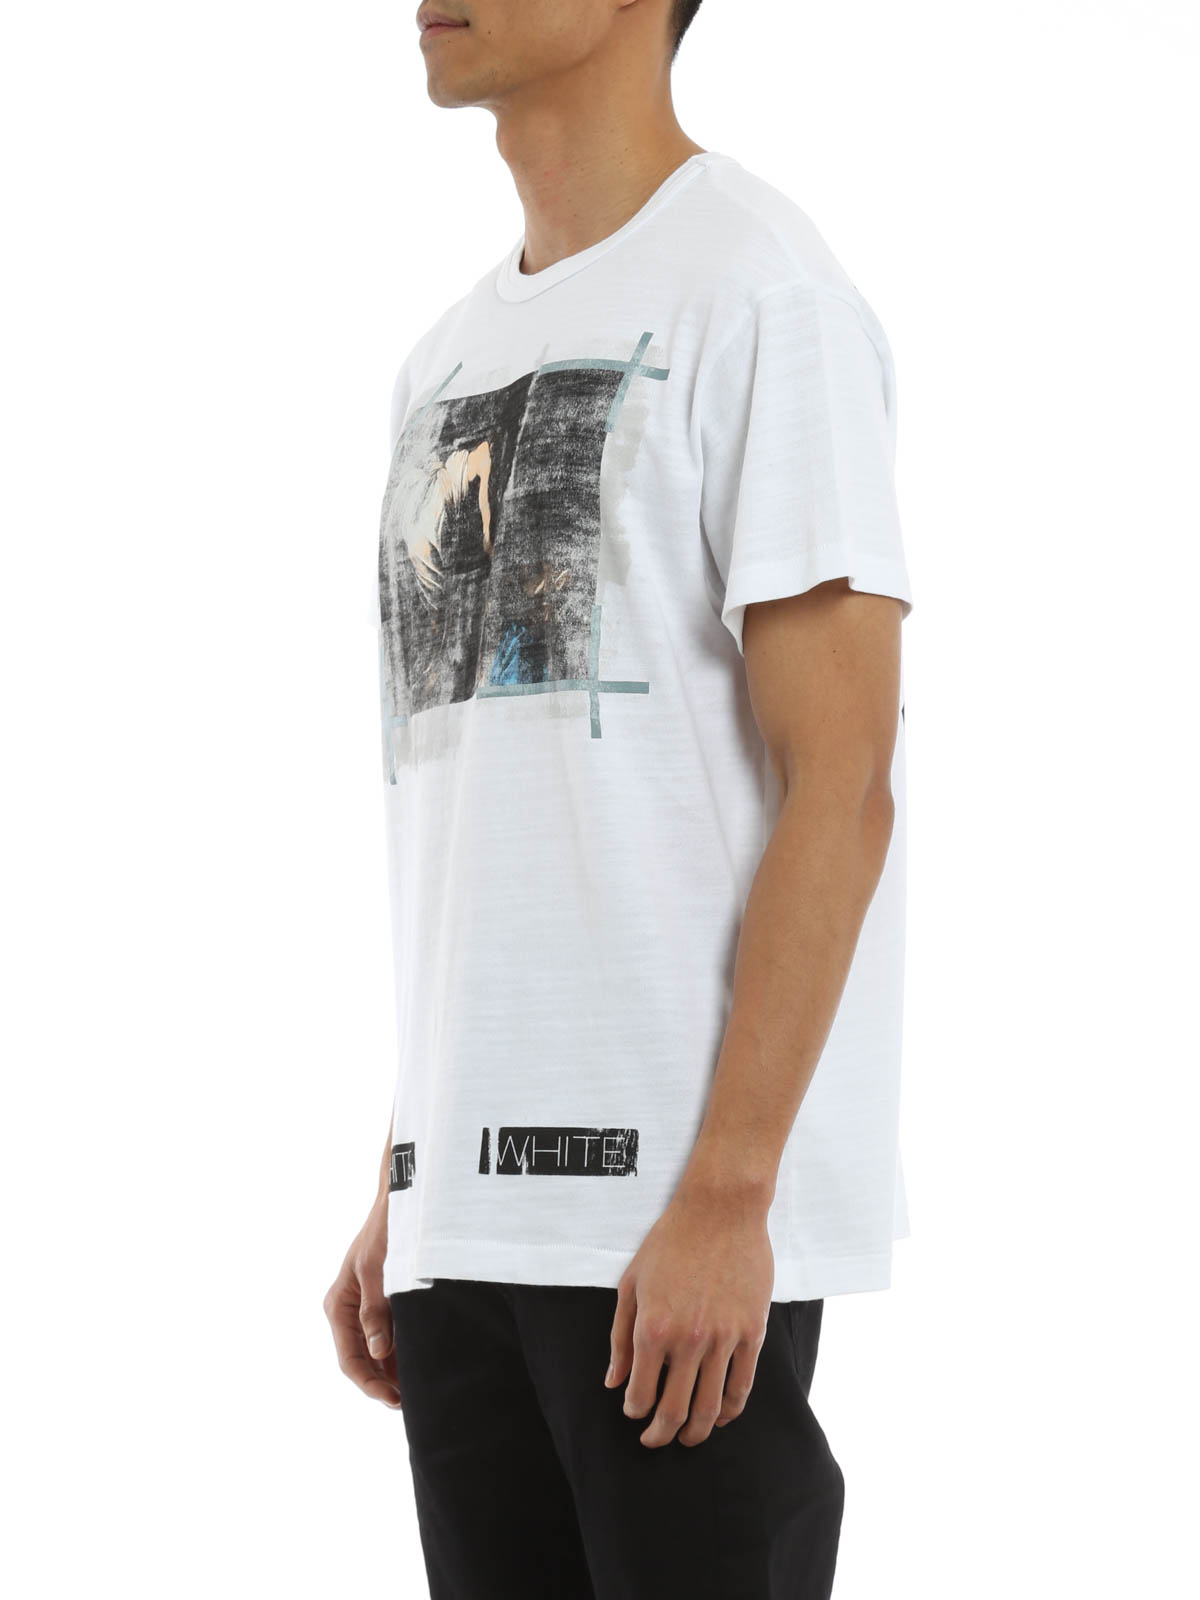 off white t shirt caravaggio t shirt omaa002s160010070188 white. Black Bedroom Furniture Sets. Home Design Ideas